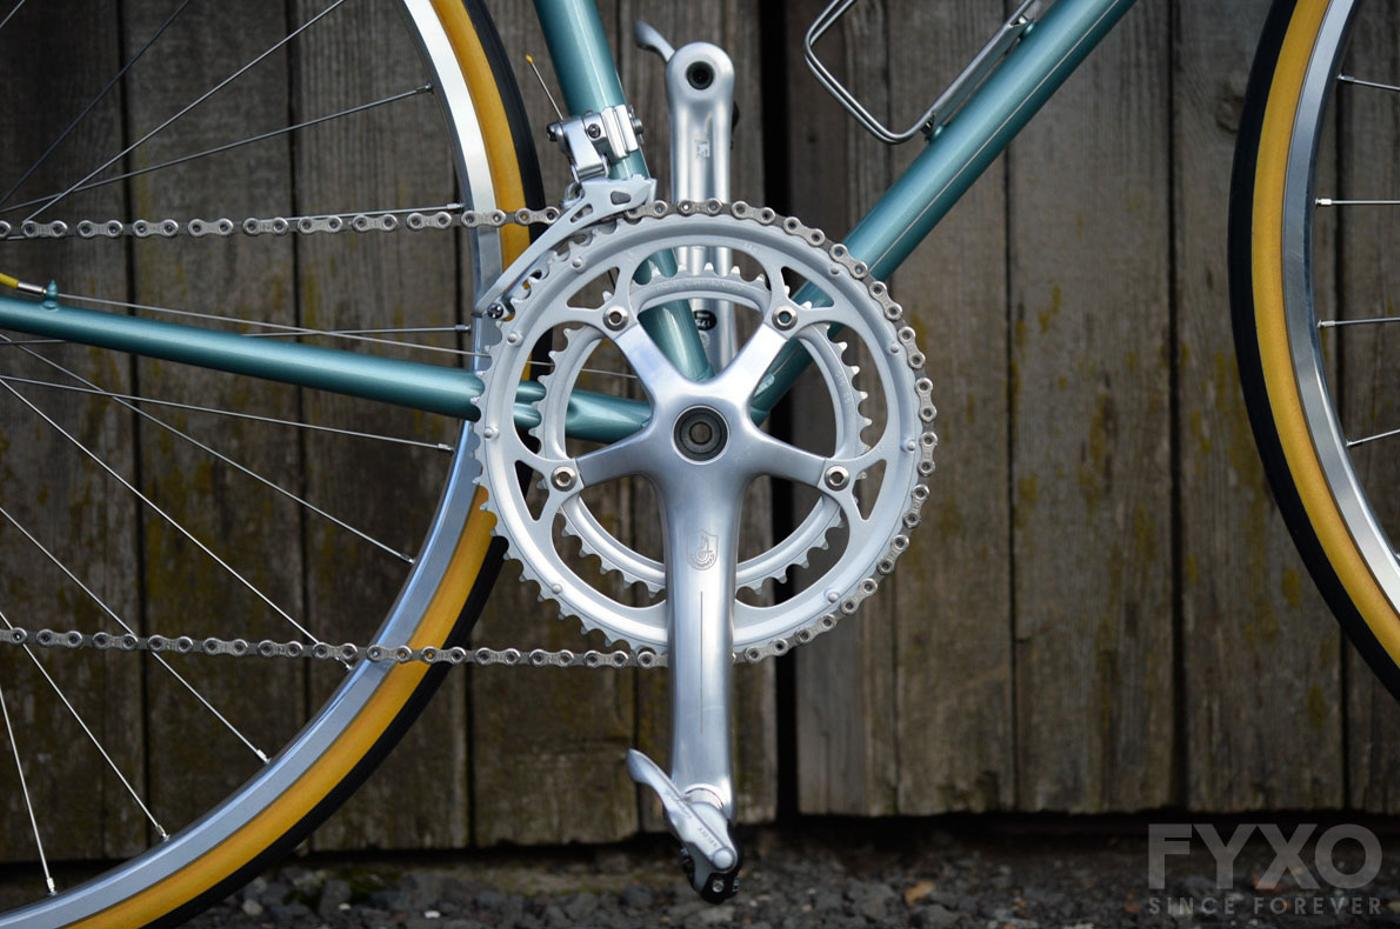 FYXO: The Campagnolo Project